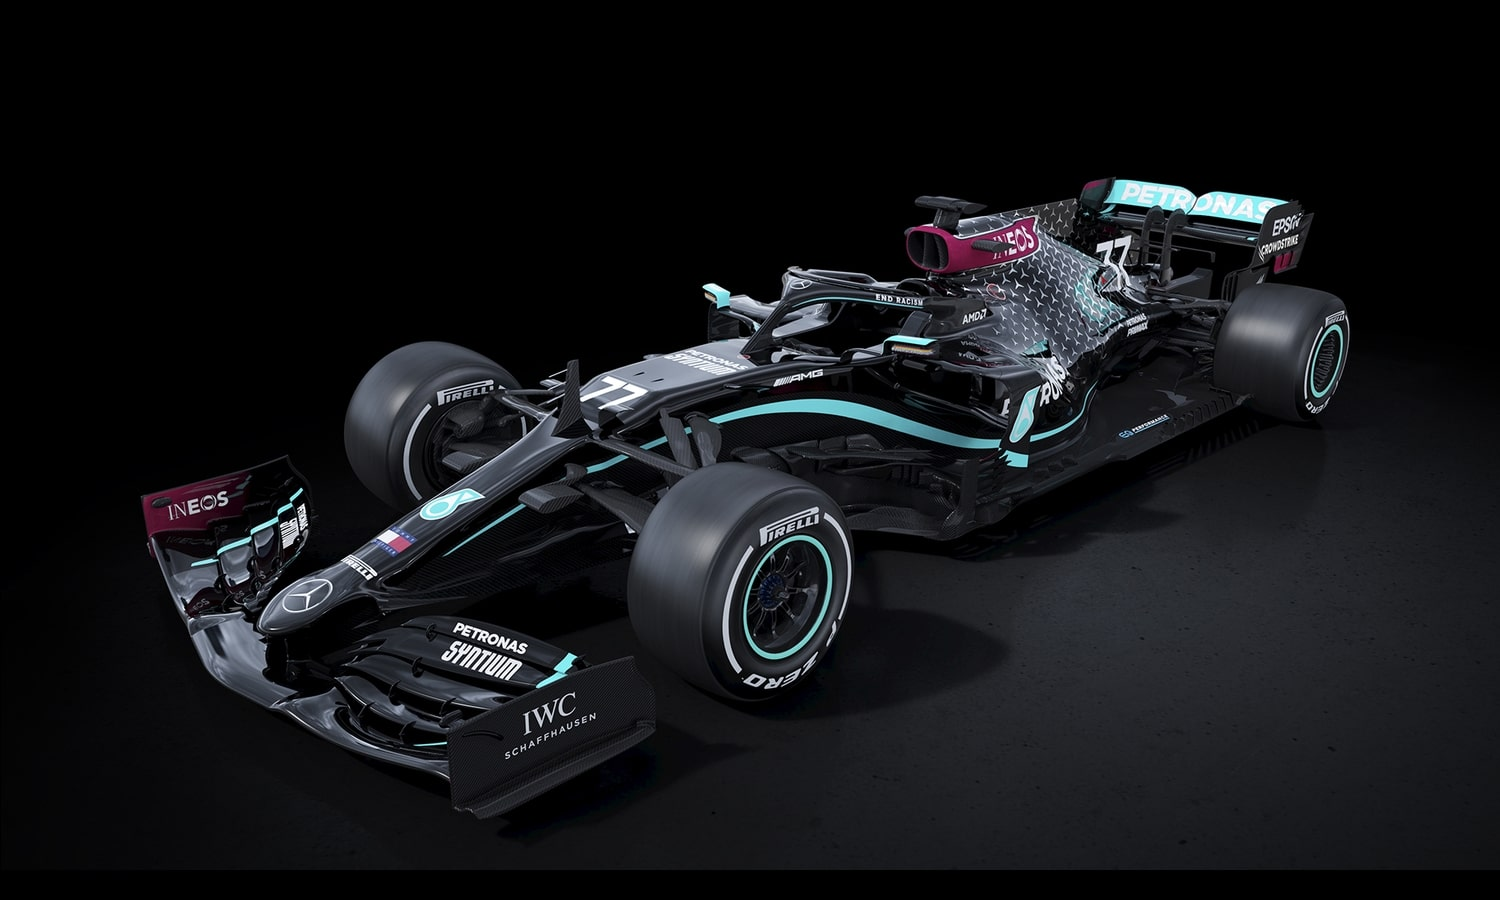 Mercedes decoración negra 2020